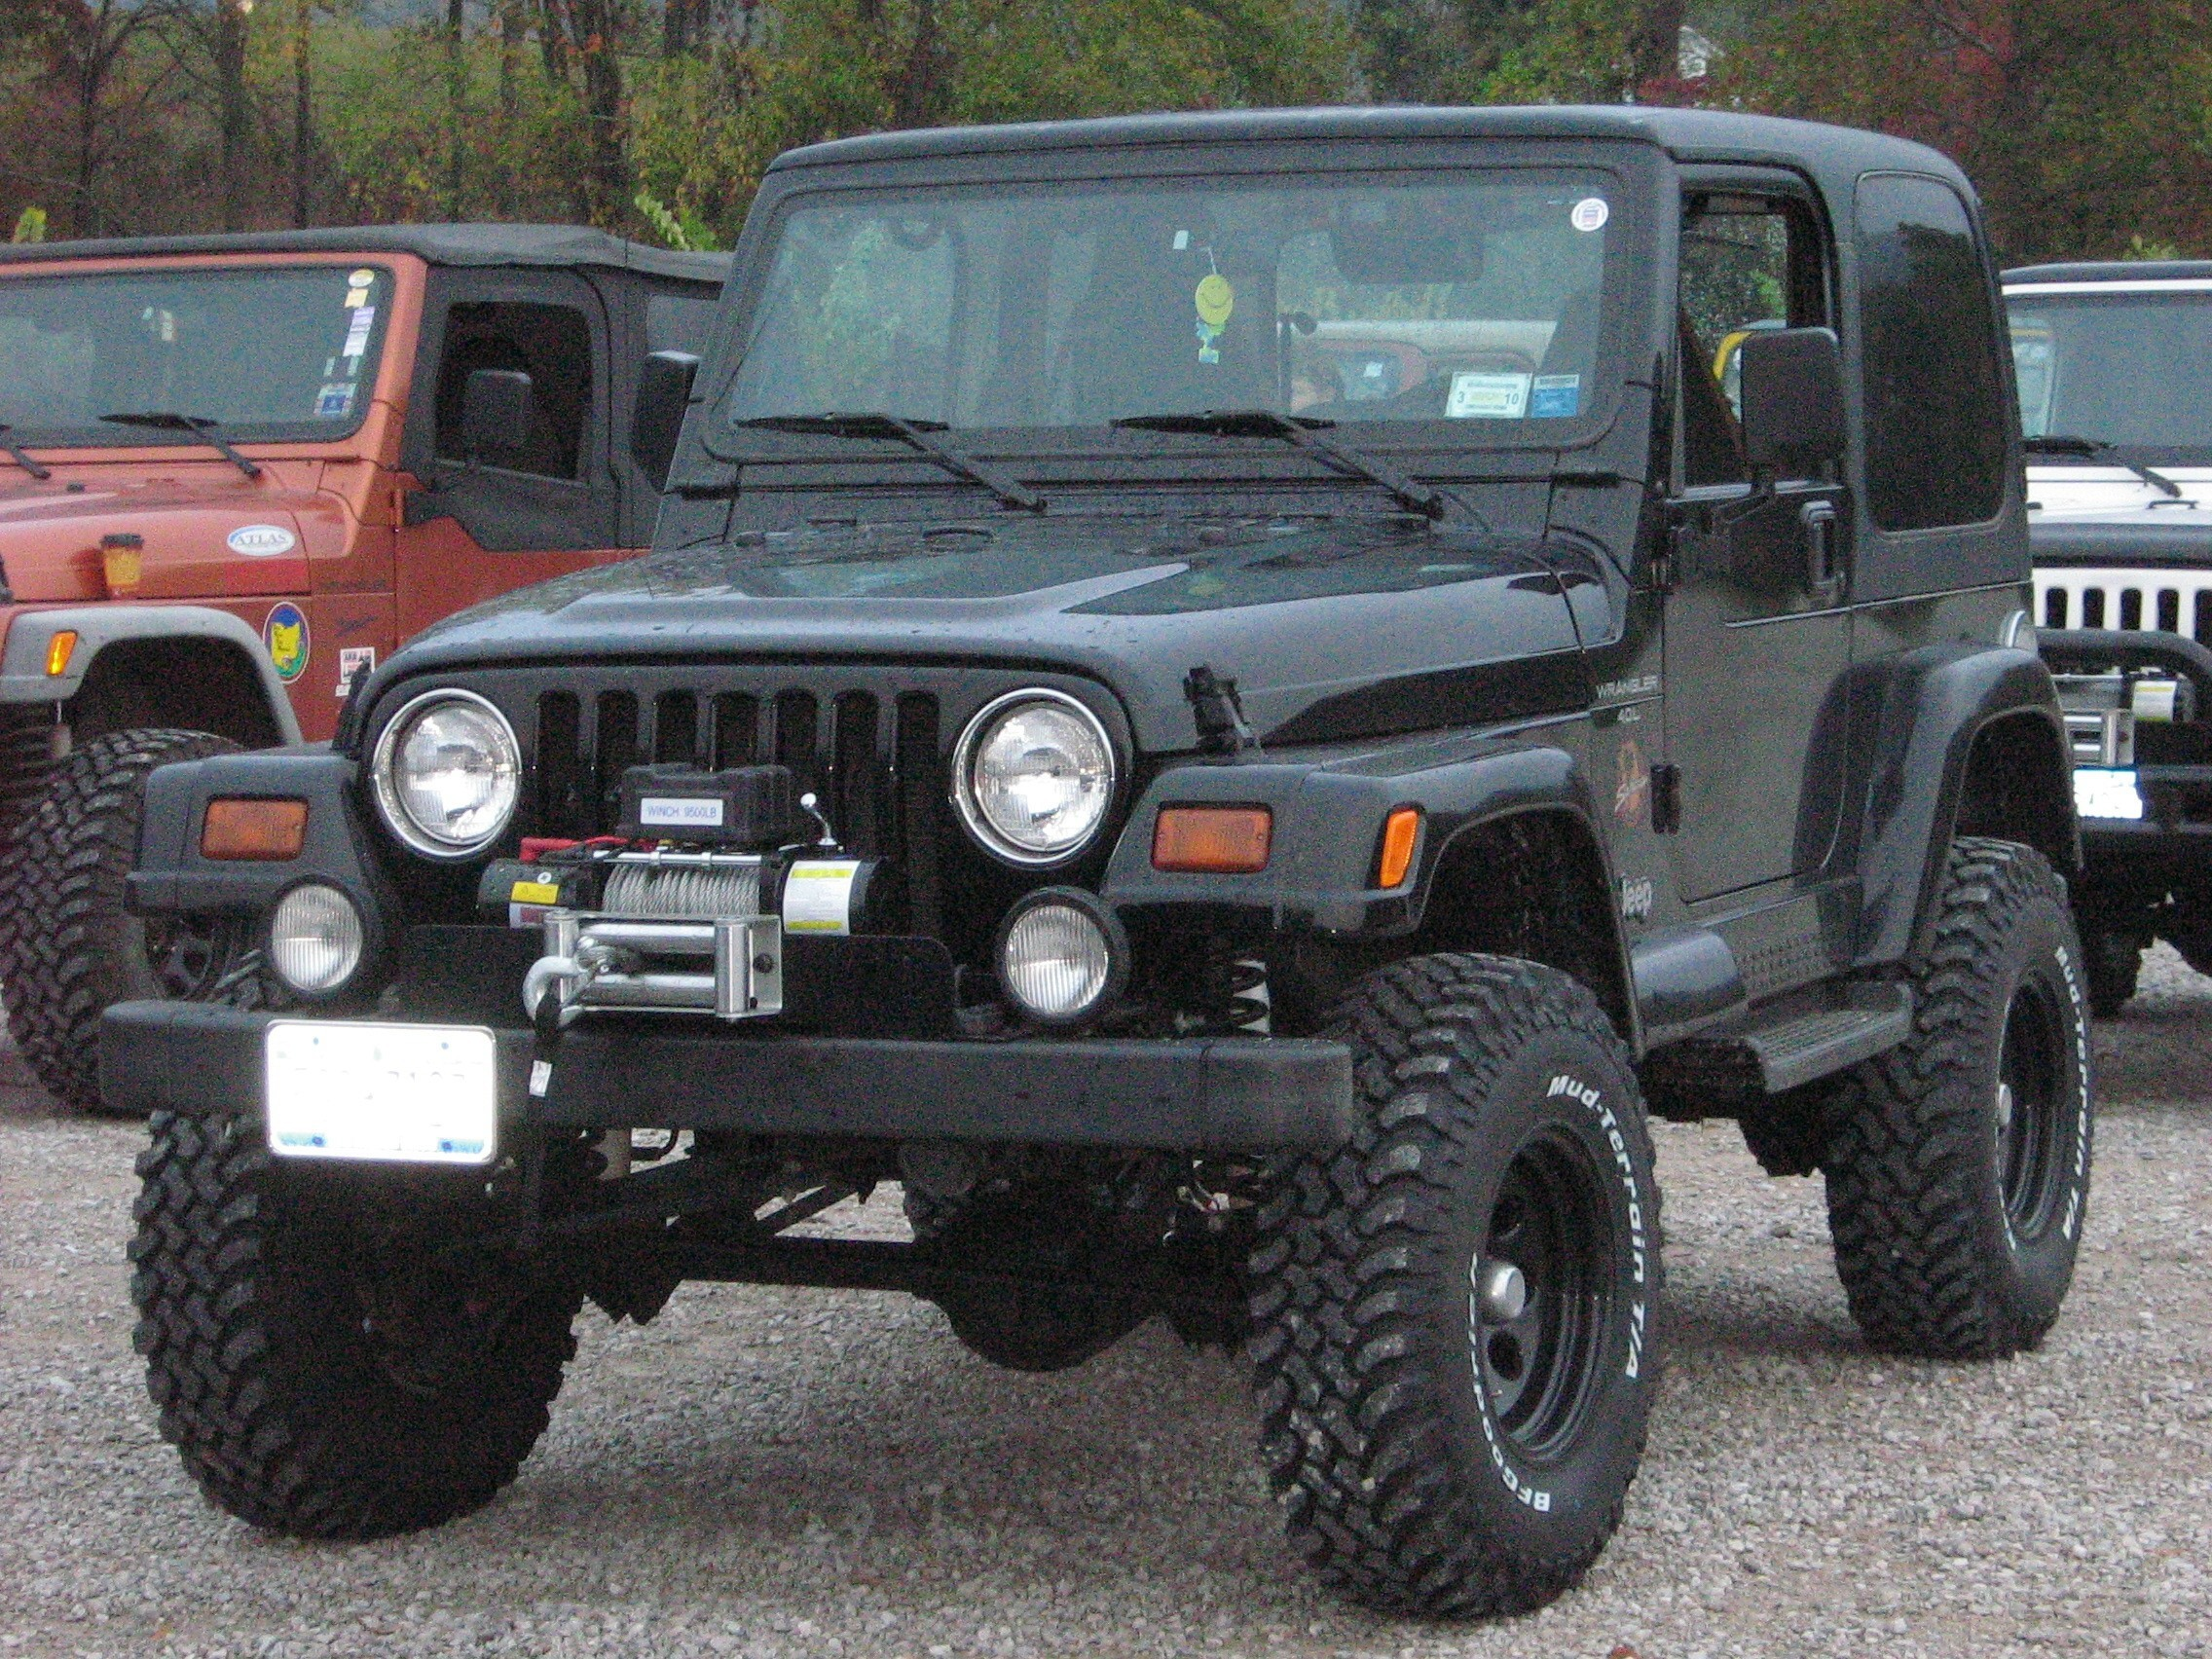 85gmcgirl 1997 Jeep Wrangler Specs, Photos, Modification Info At CarDomain